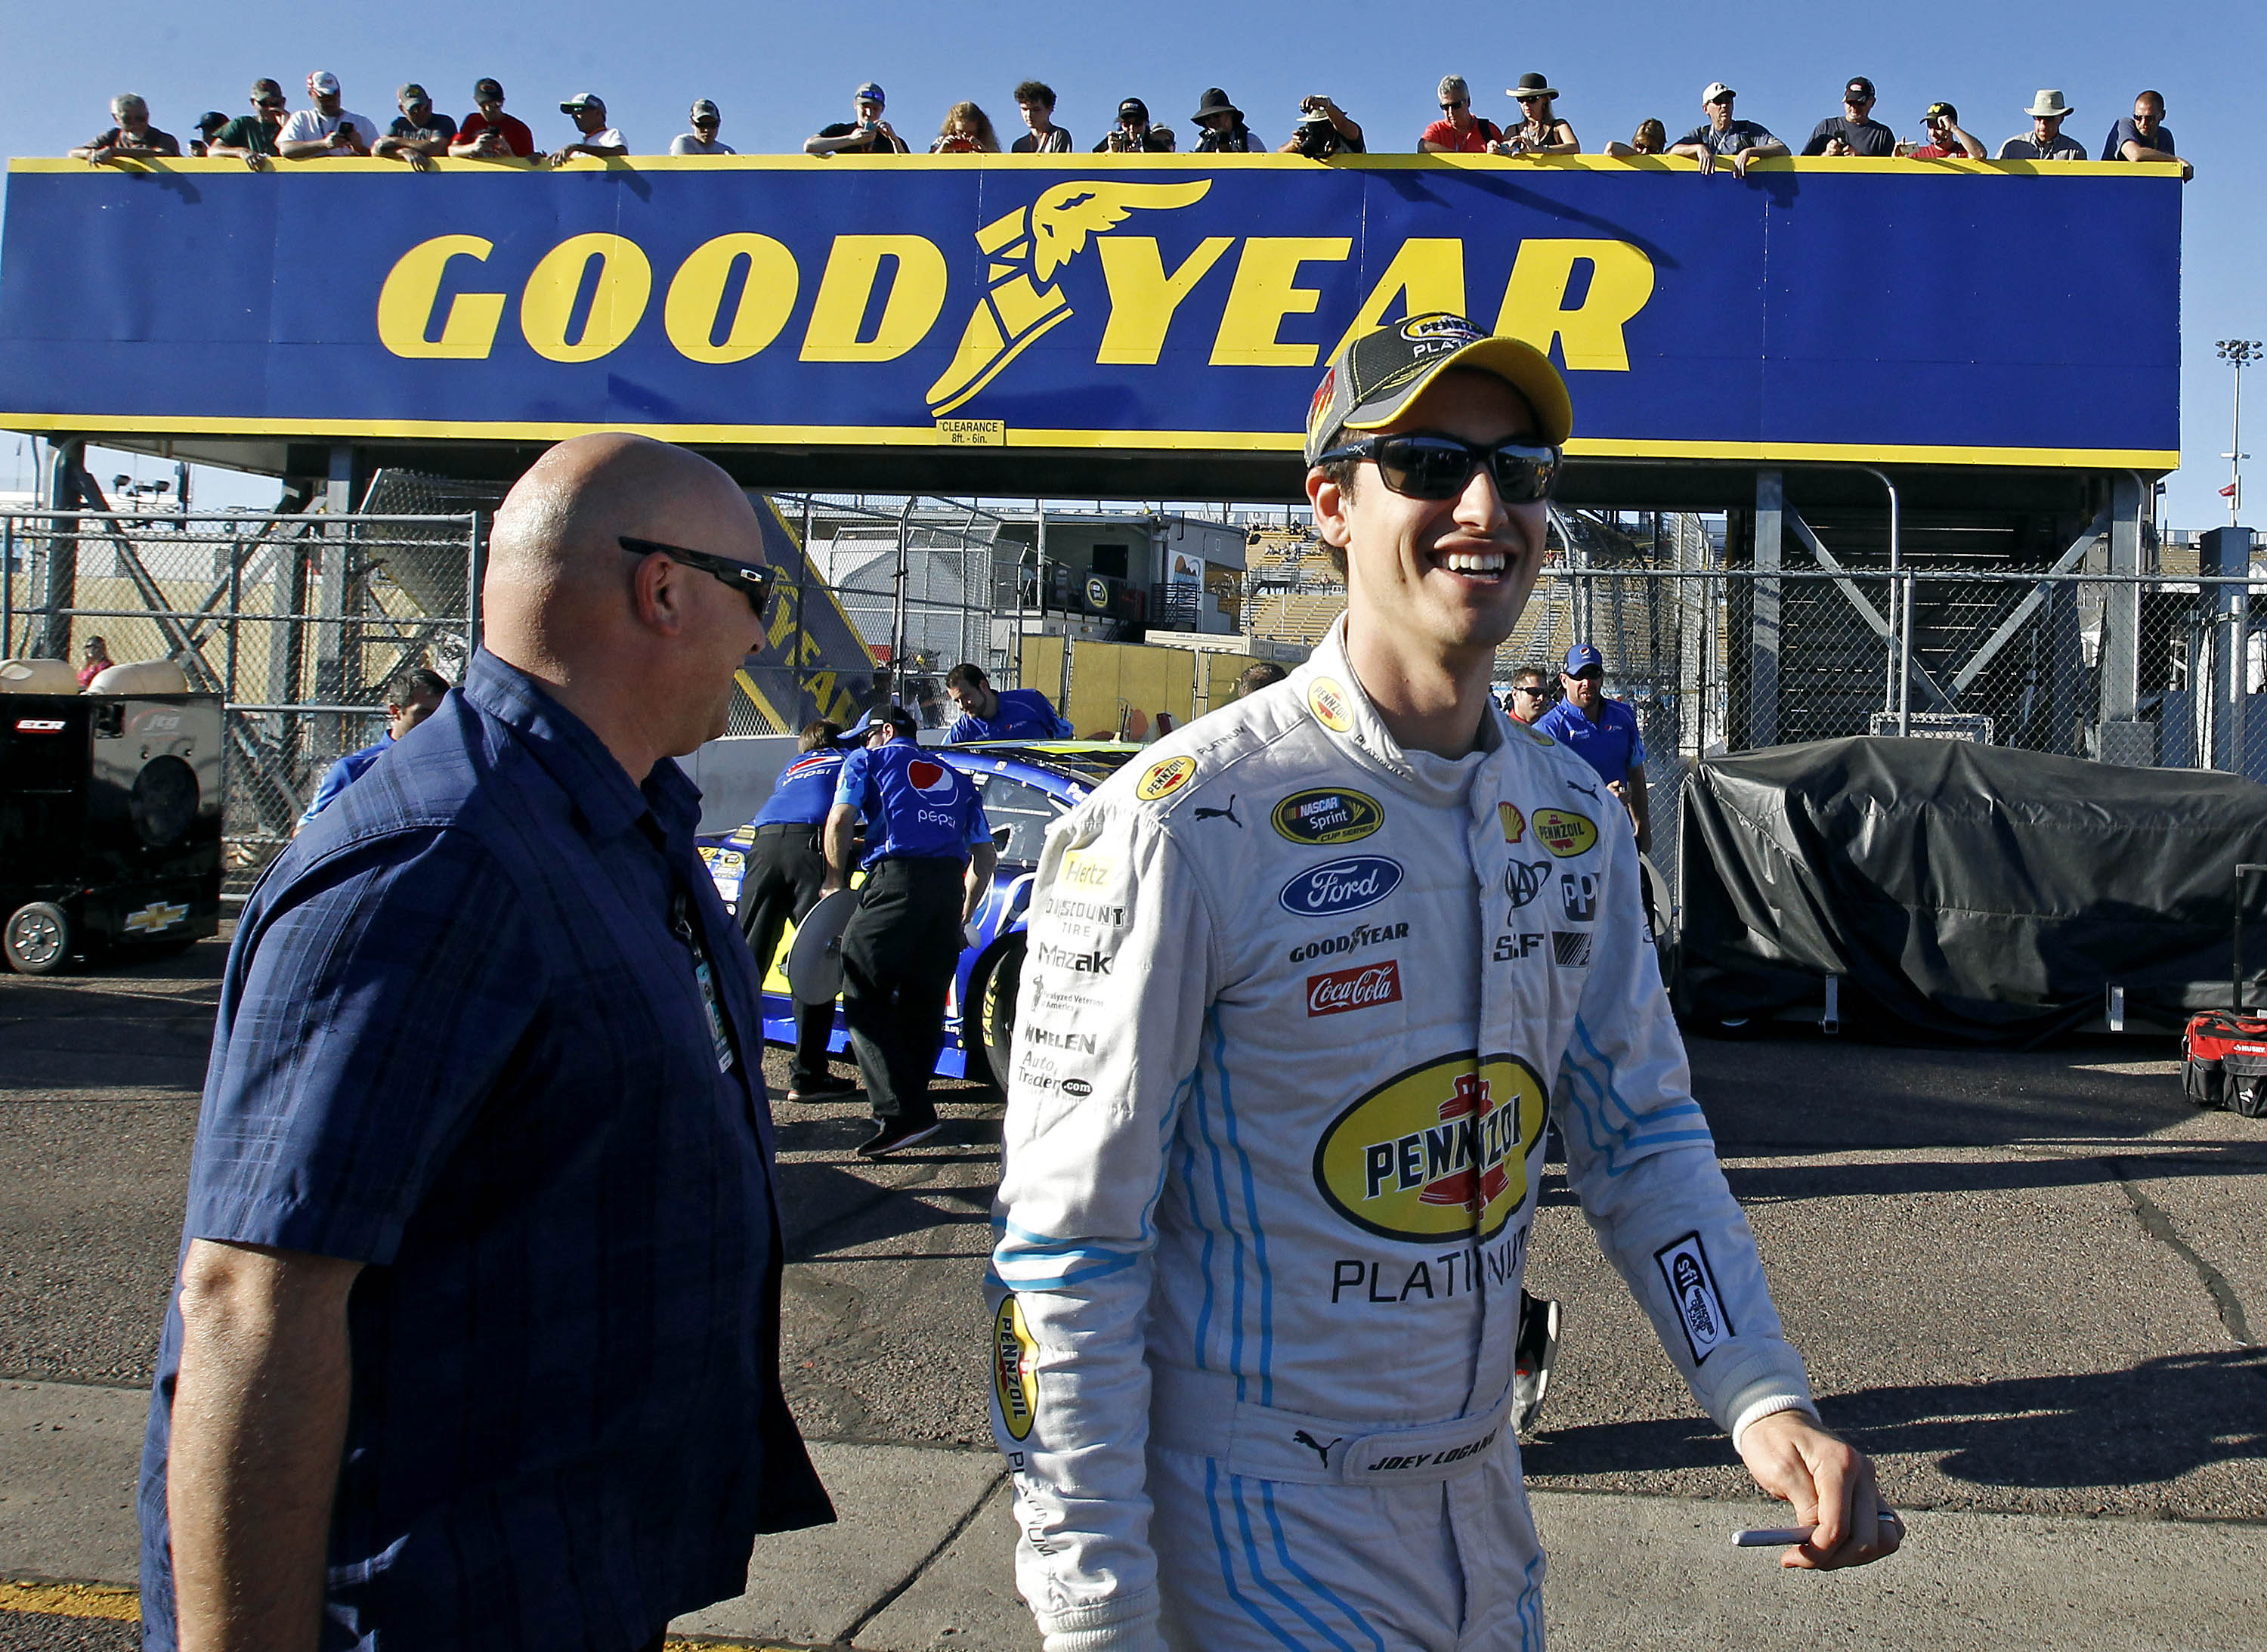 Joey Logano walks through the garage area before qualifying for Sunday's NASCAR Sprint Cup series auto race at Phoenix International Raceway, Friday, Nov. 13, 2015, in Avondale, Ariz. Logano is is looking to clinch a spot in the Chase for the Cup champion